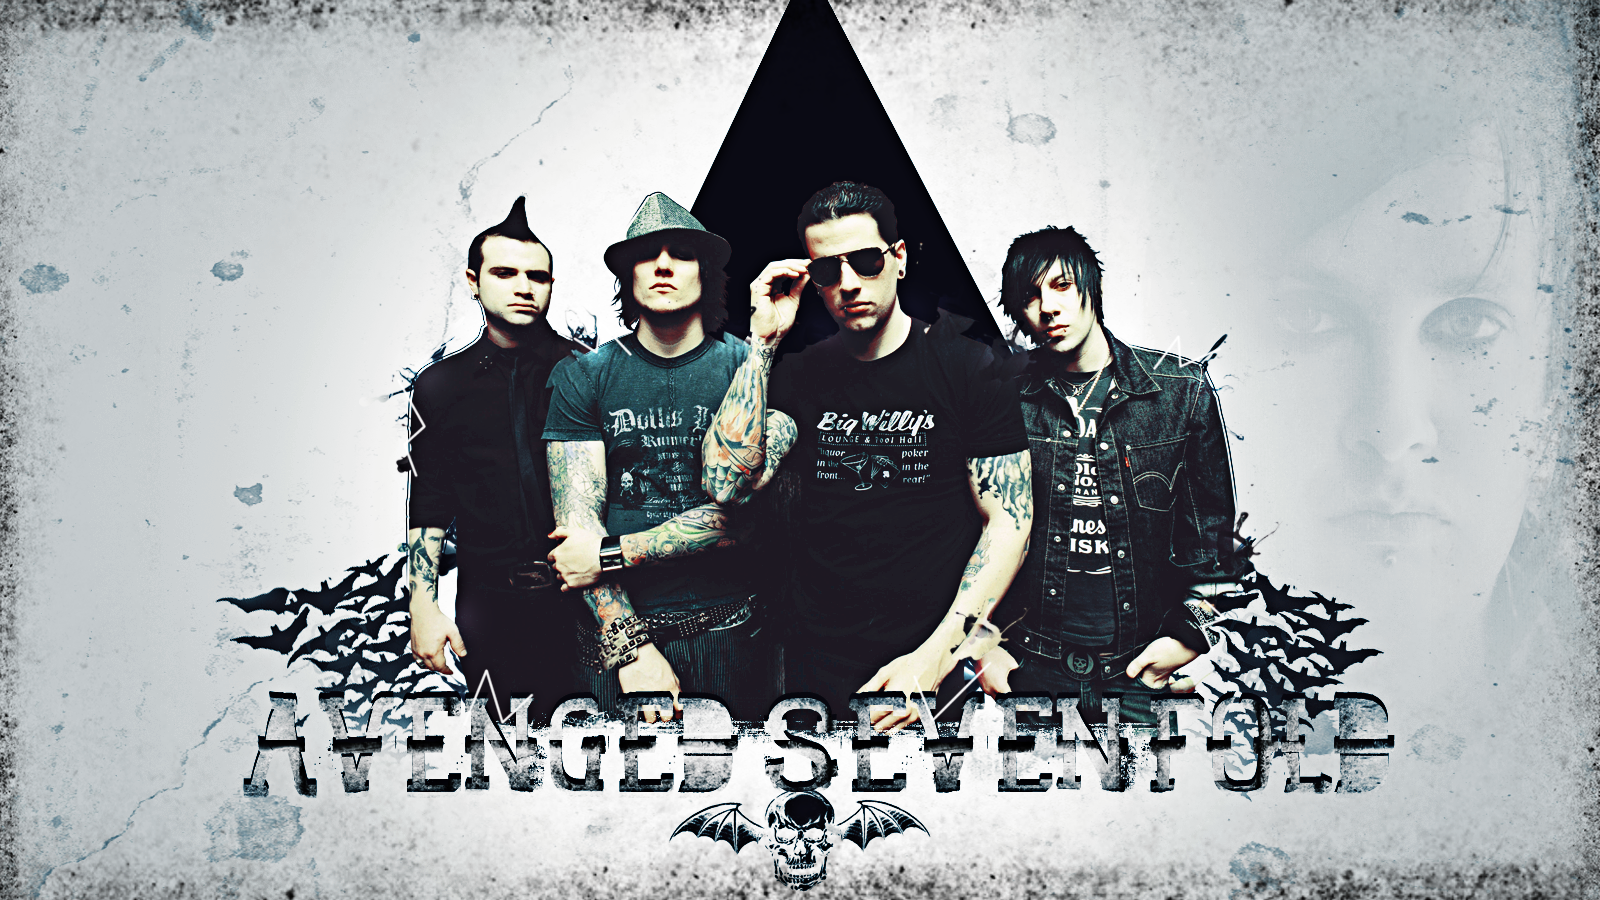 wallpapers hd for mac: Avenged Sevenfold Wallpaper High ...